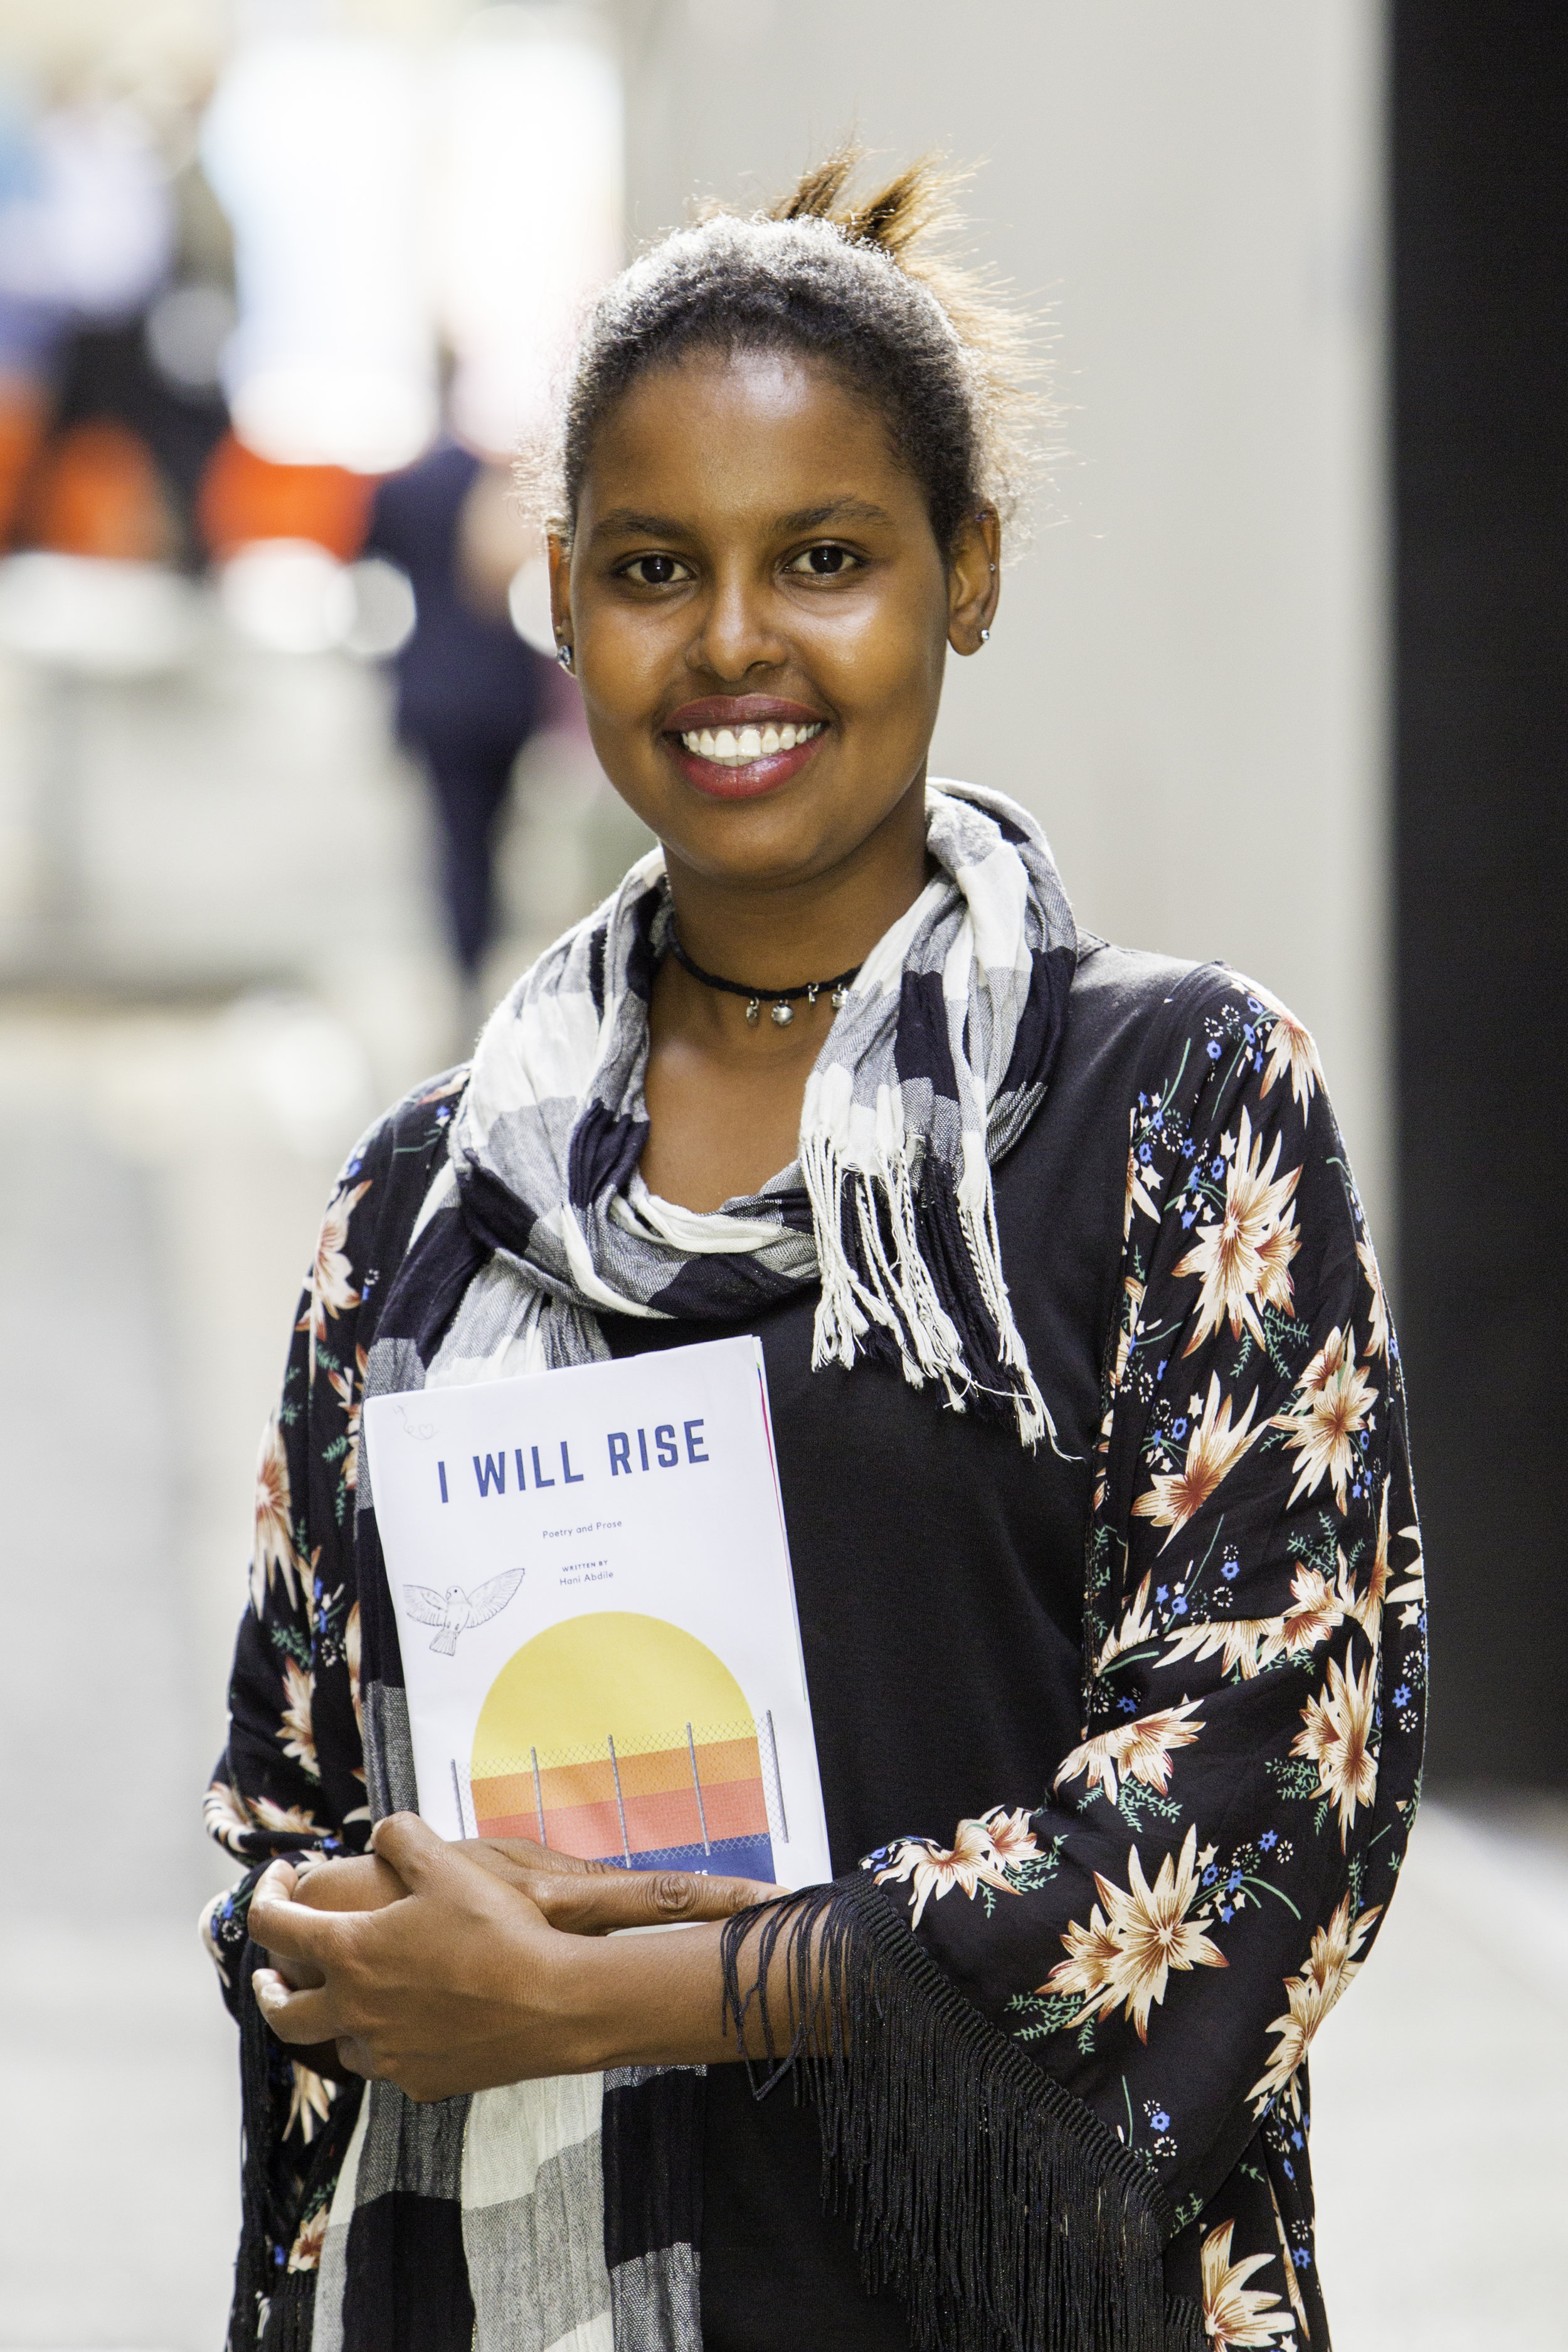 - Hani Abdile is a writer and spoken word poet, who fled the civil war in Somalia. Although only 21, Hani has already lived more than most of us; being only 16 when she fled Somalia alone, she was forced to leave her siblings and family behind. She made her way to Australia by boat and spent 11 months on Christmas Island. While detained, Hani found healing in writing poetry. Hani began writing about her life and in part, it was to improve her English speaking and writing abilities.Hani is an honorary member of PEN International, a lead writer for the Writing Through Fences group, and has received numerous awards for her community work and many achievements since being released from immigration detention. Her first book I Will Rise was published in 2016 to critical acclaim. Hani continues tapping into the power of the spoken word, and has a strong vision to shape the world through pen and paper.Appearing at Africa Is Not A Country